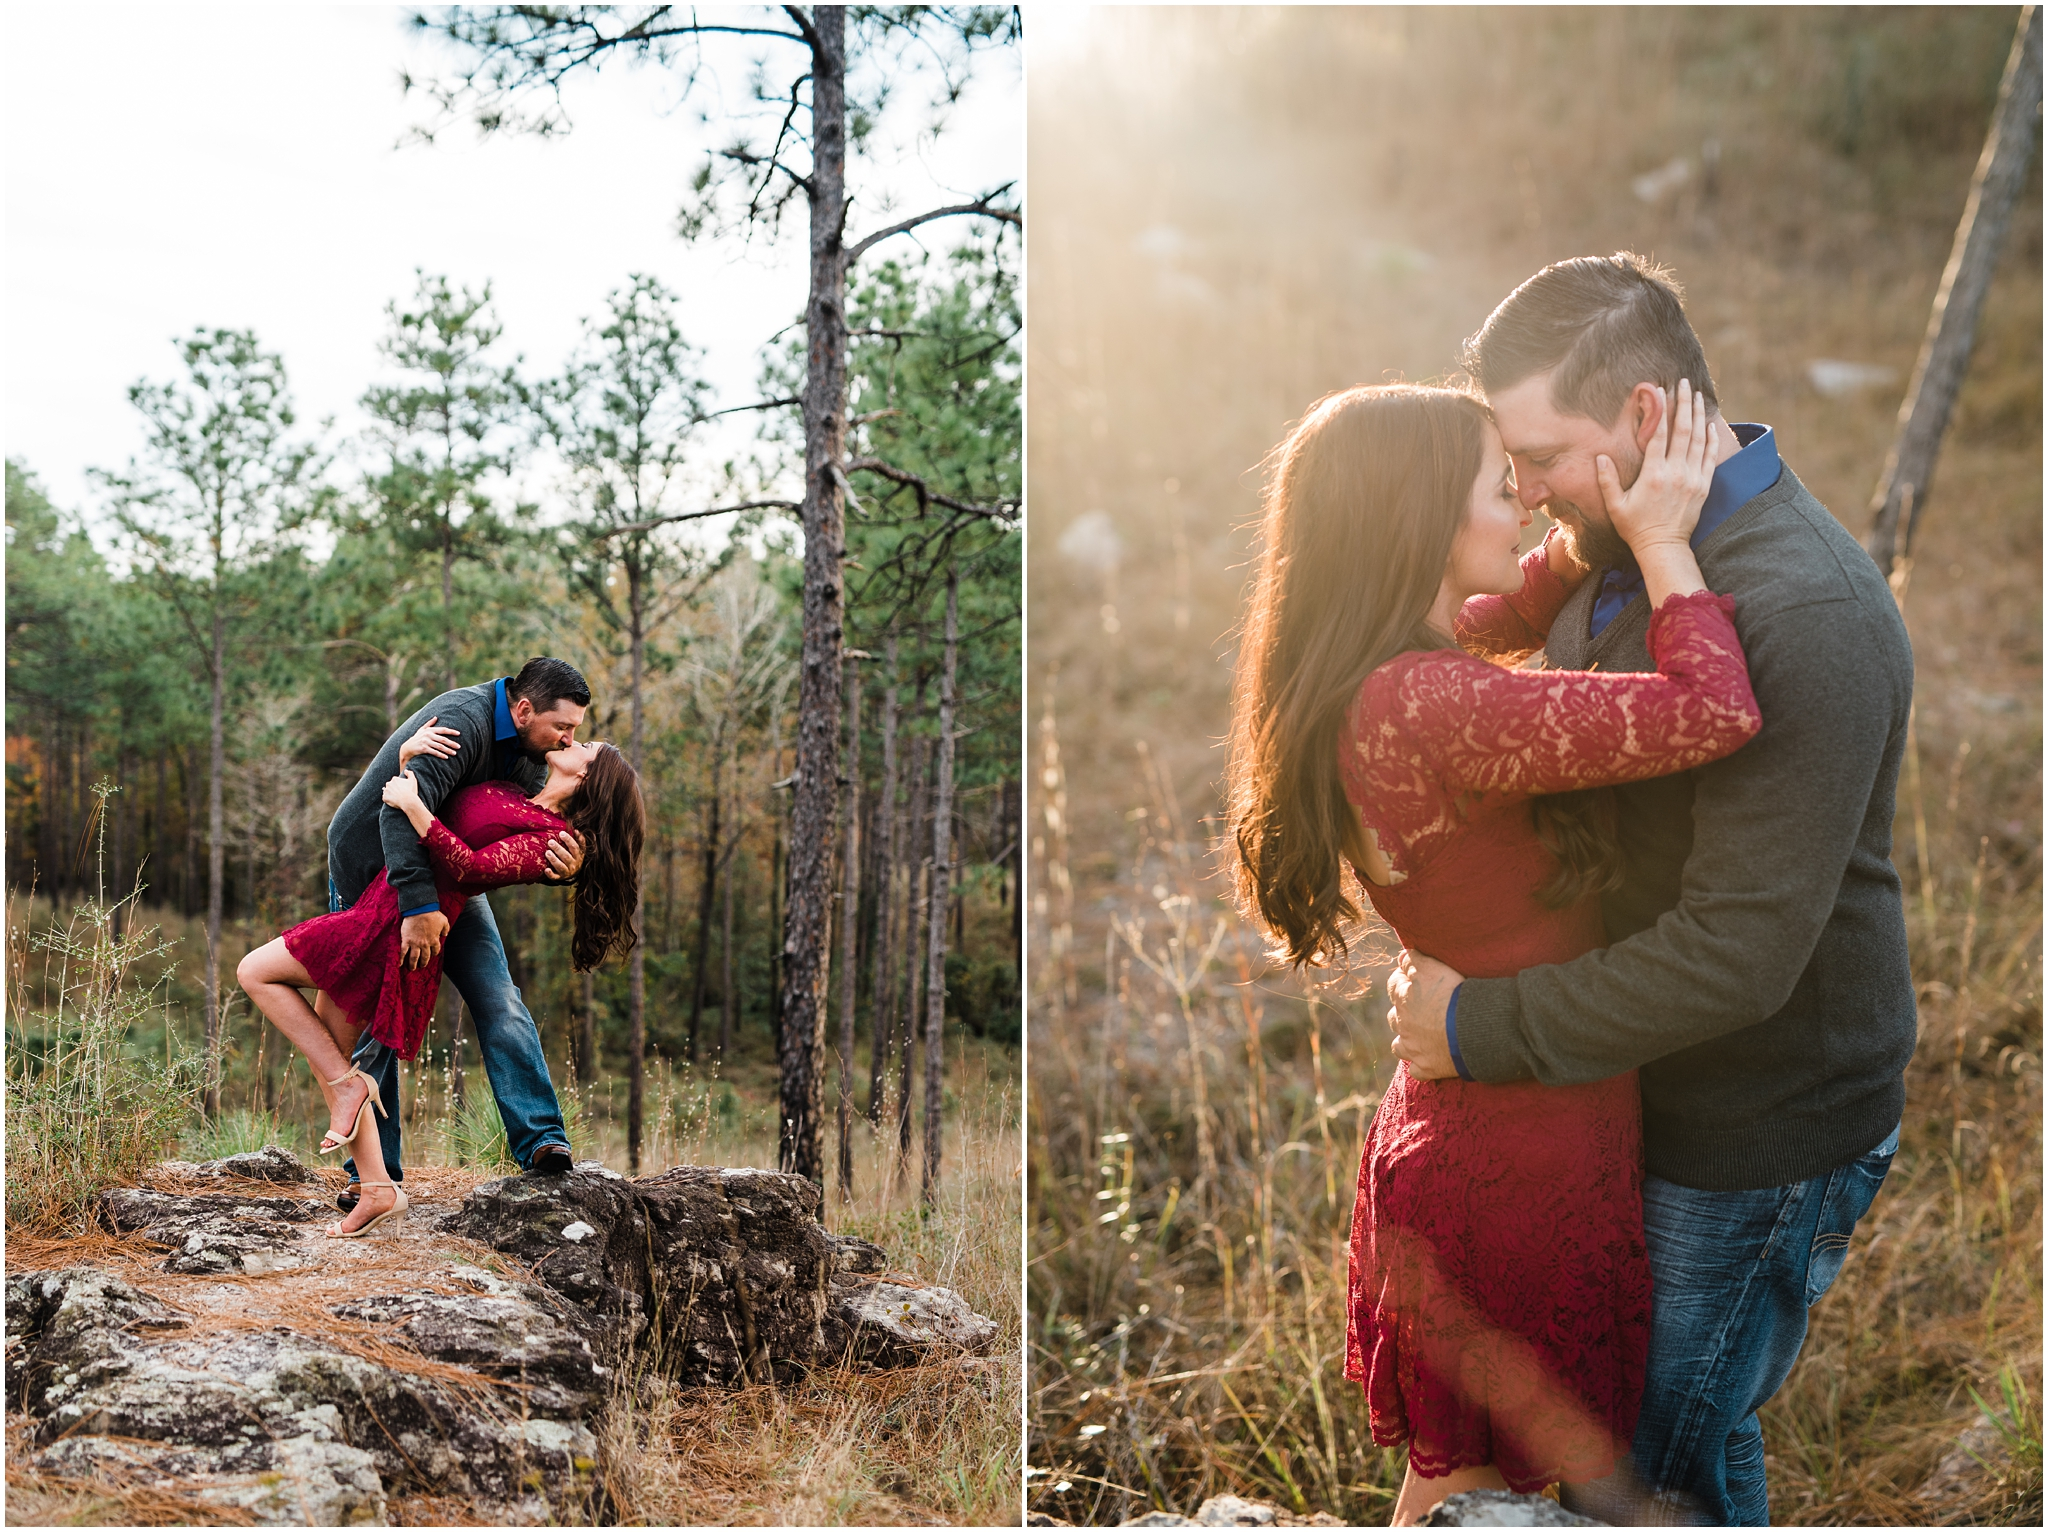 A Fall Kisatchie Forest Engagement Session photographed by Taylor Hubbs Photography, located in Baton Rouge, Louisiana. A wedding and lifestyle family photographer.